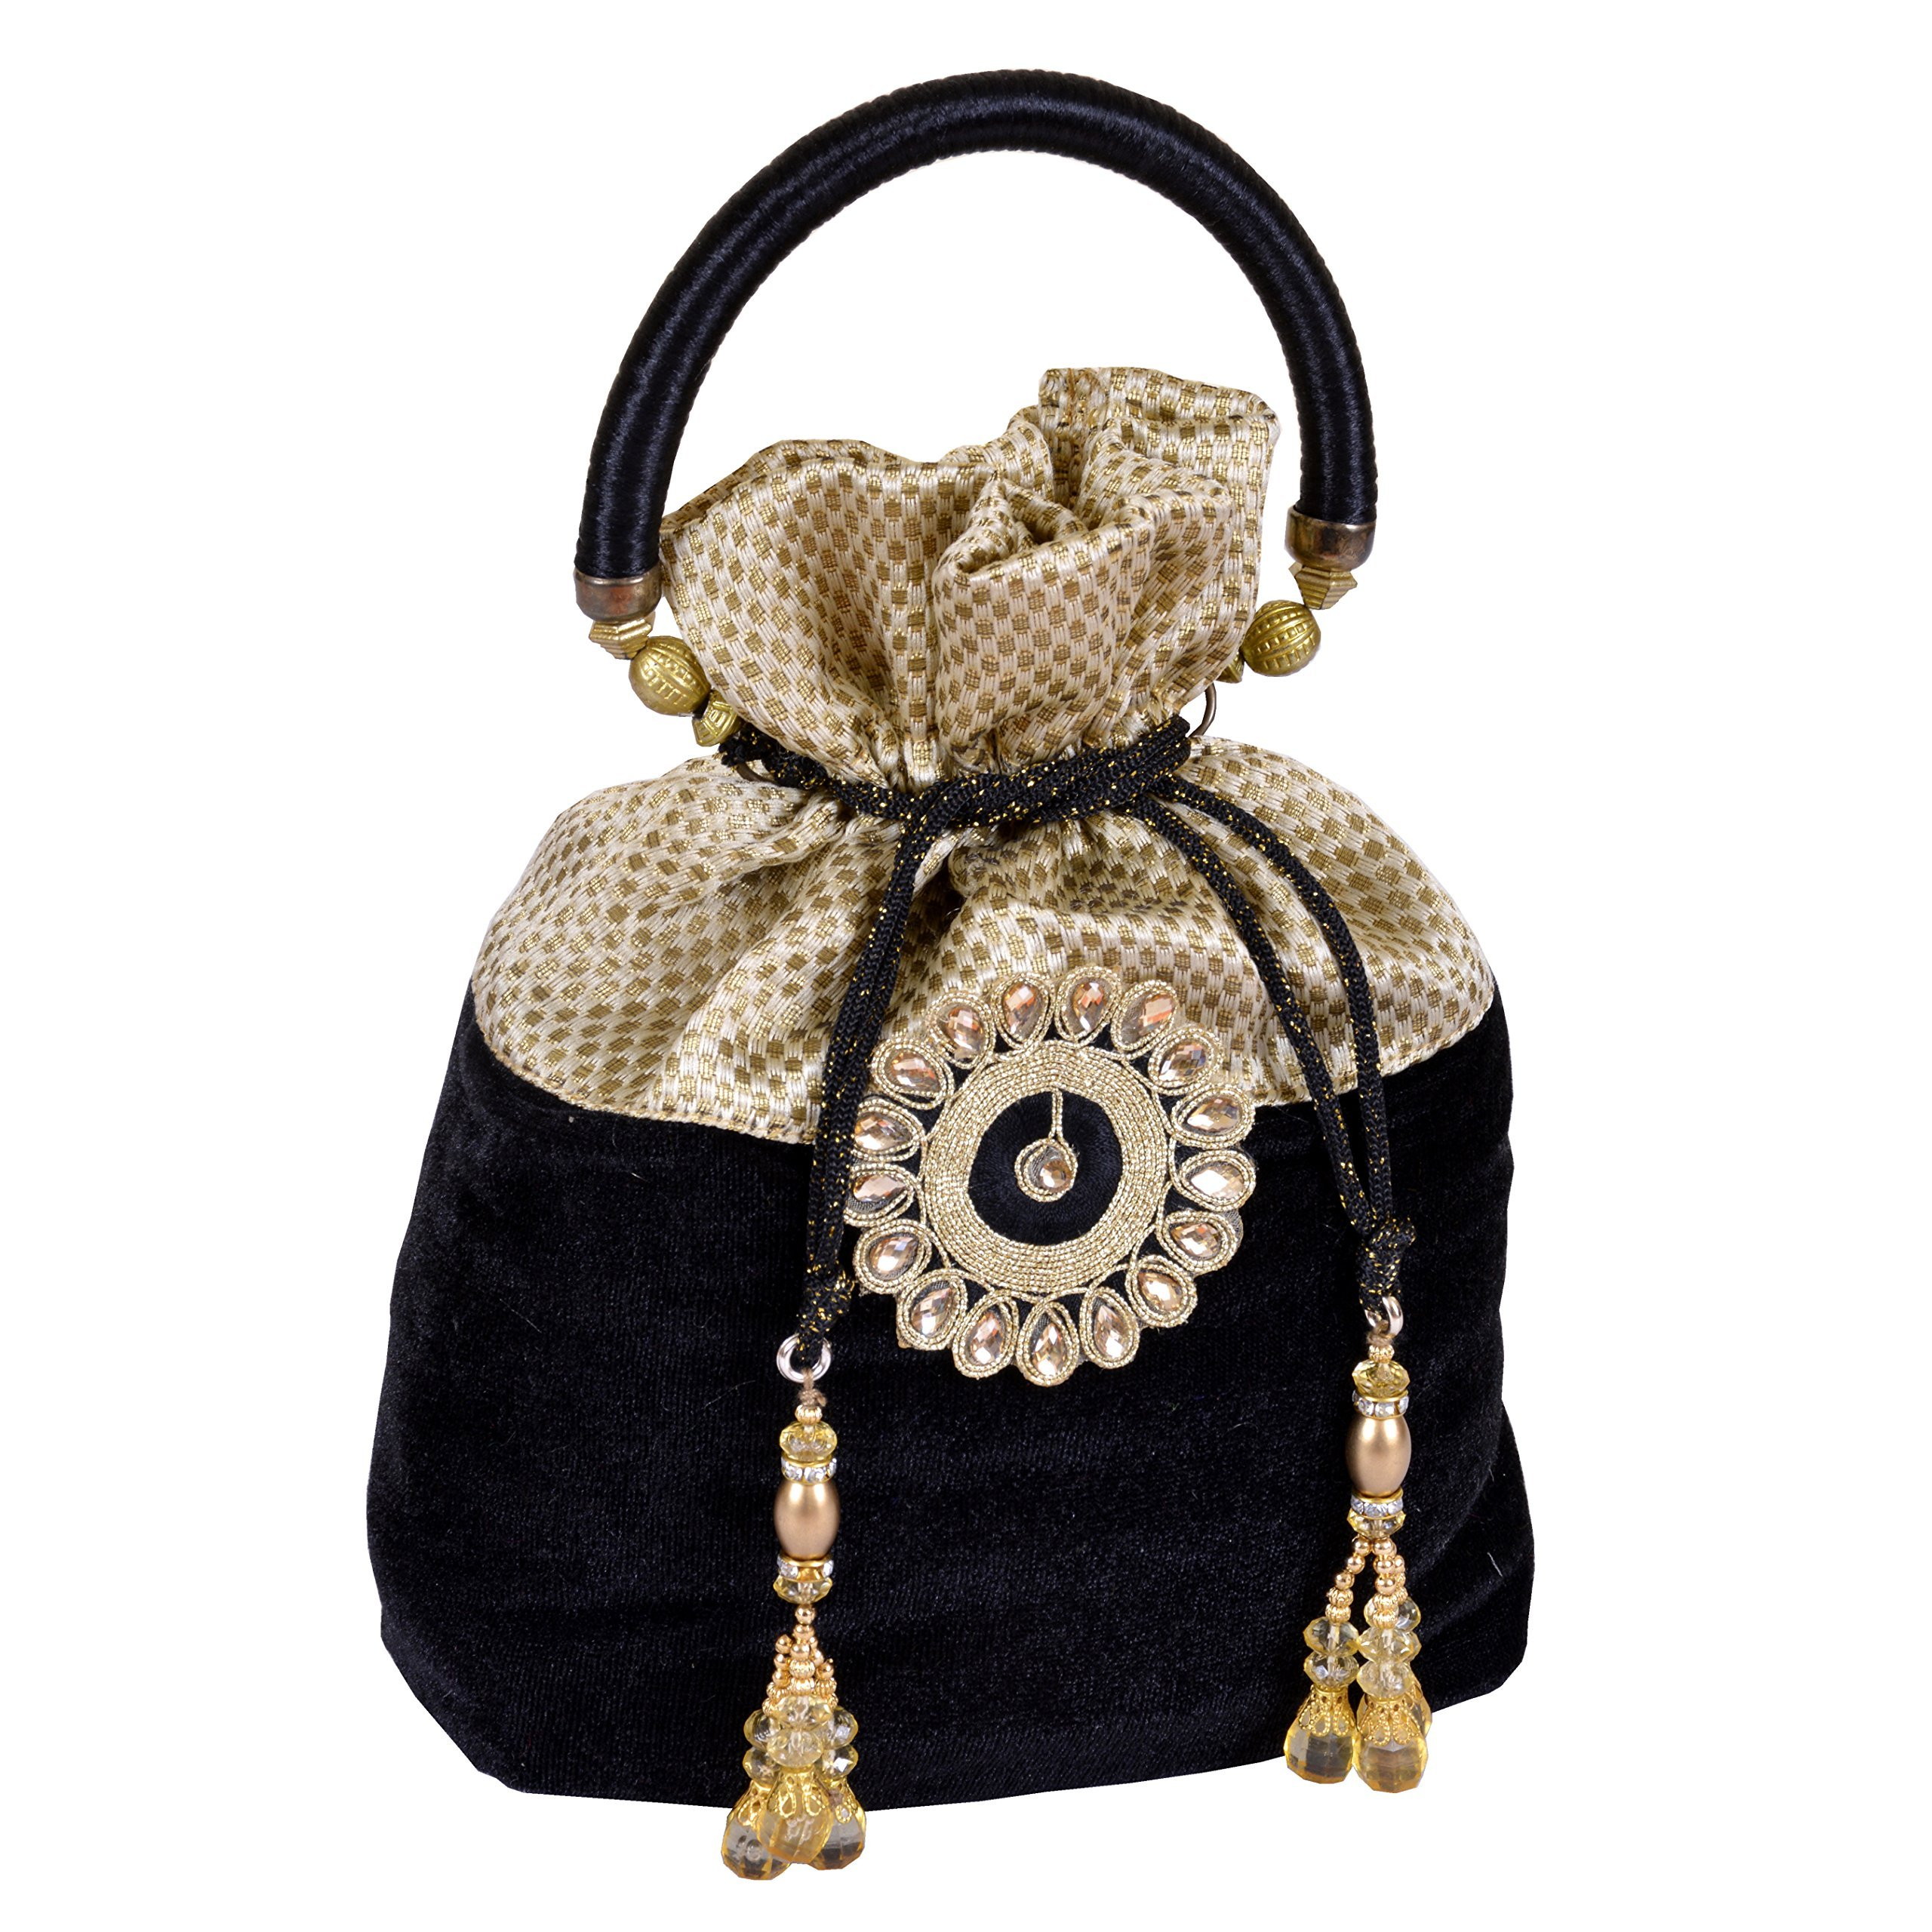 Maitri Creations Women Traditional Silk Brocade Purse Potli Bag Drawstring Jewelry Pouch Bag Cotton Bag Gift Bag Value Set Wristlet Beaded Handbag Wedding Evening Party Designer Wallet Bridal Clutch